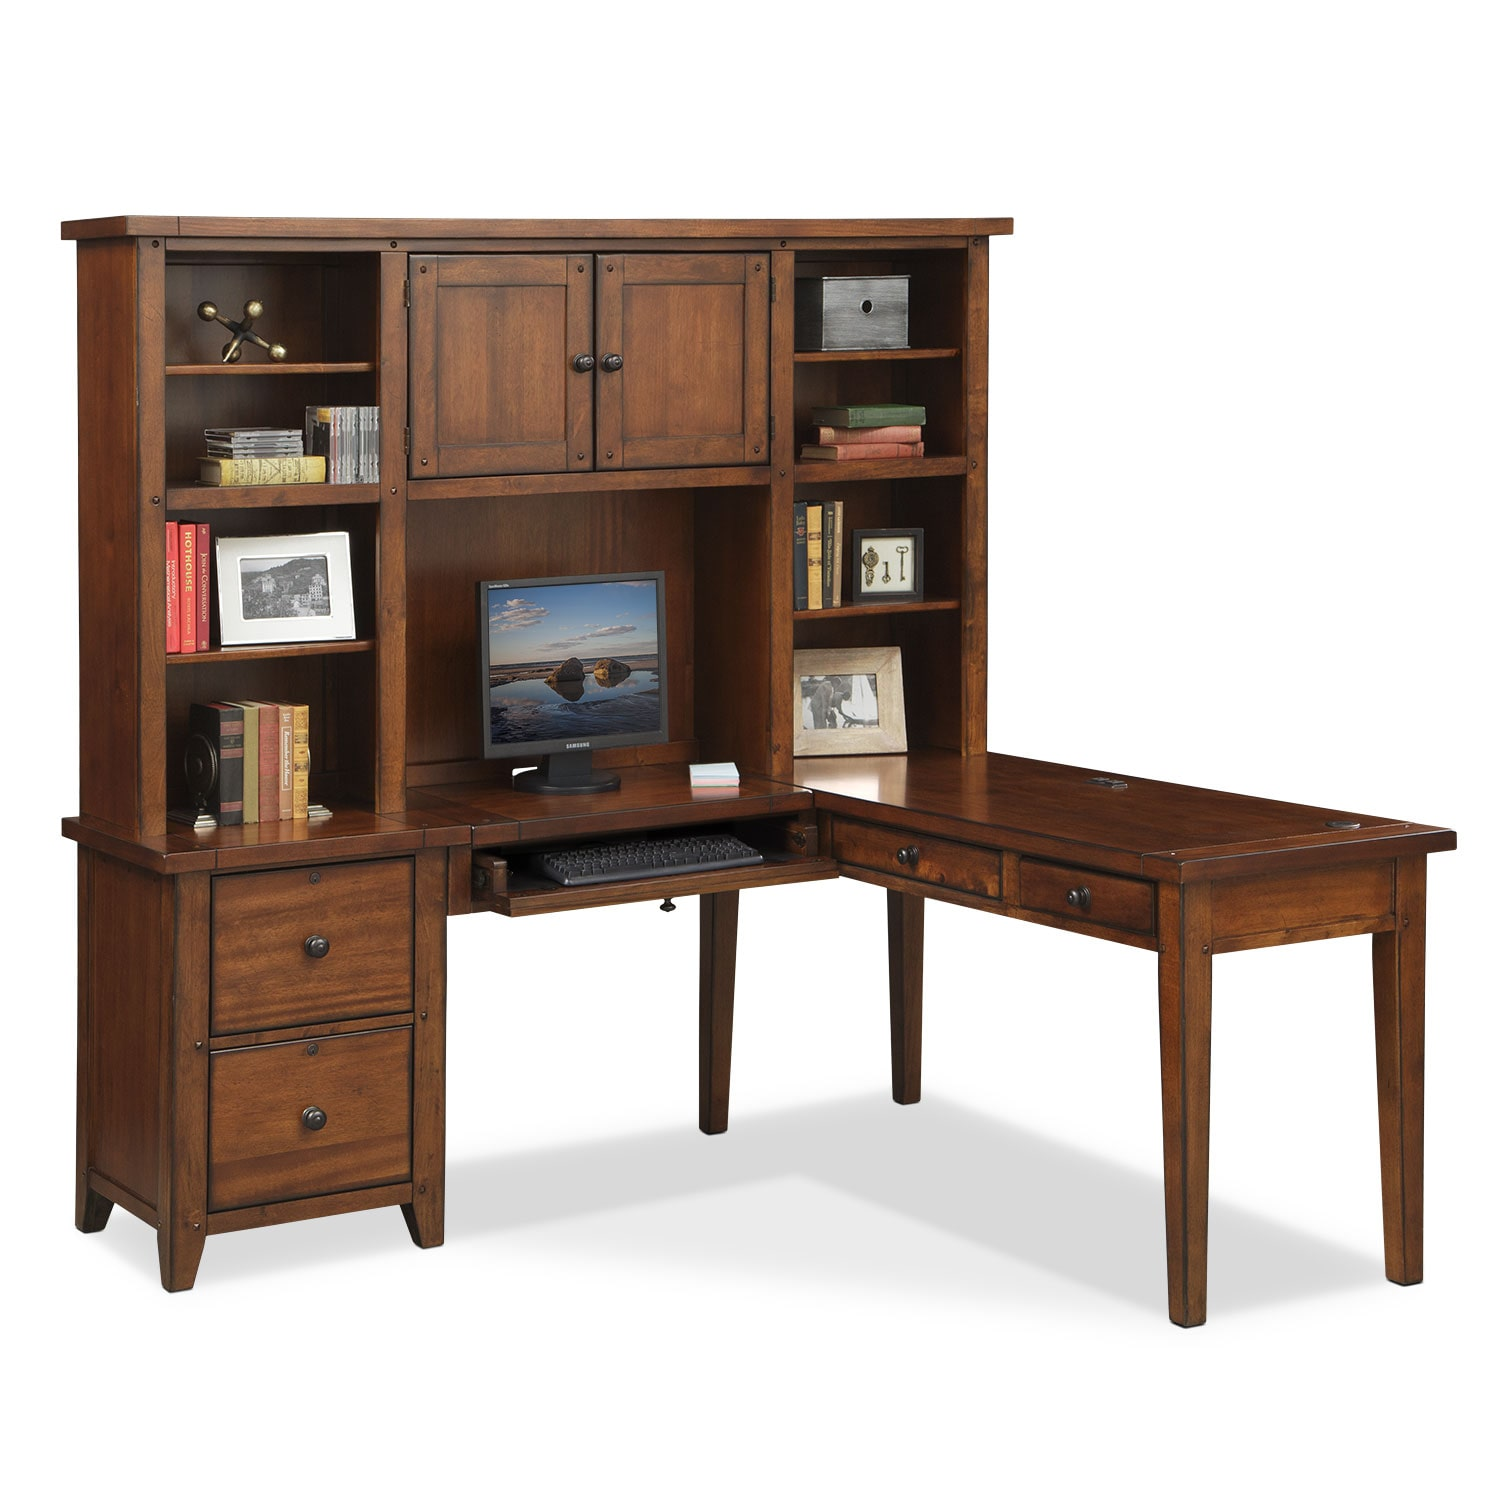 Morgan L-Shaped Desk with Hutch - Brown